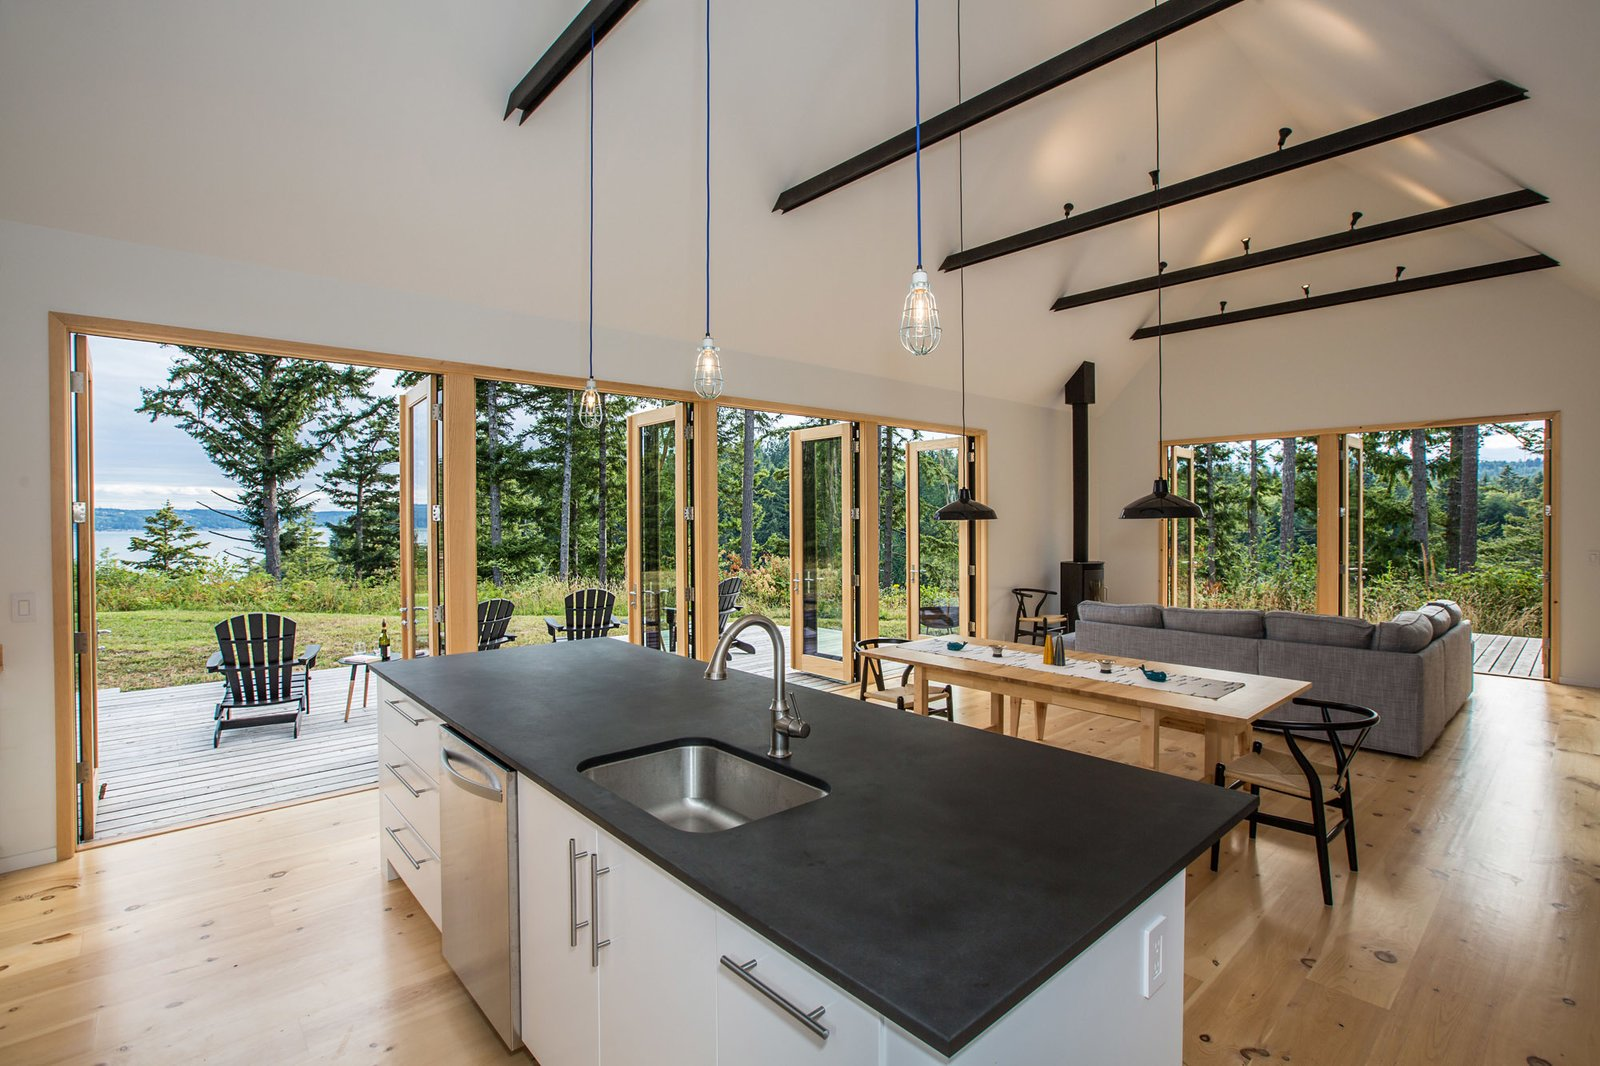 Clean, white and warm interiors are punctuated by darker accents. Tagged: Kitchen, Granite Counter, Pendant Lighting, Undermount Sink, and Light Hardwood Floor.  The Coyle by Prentiss + Balance + Wickline Architects